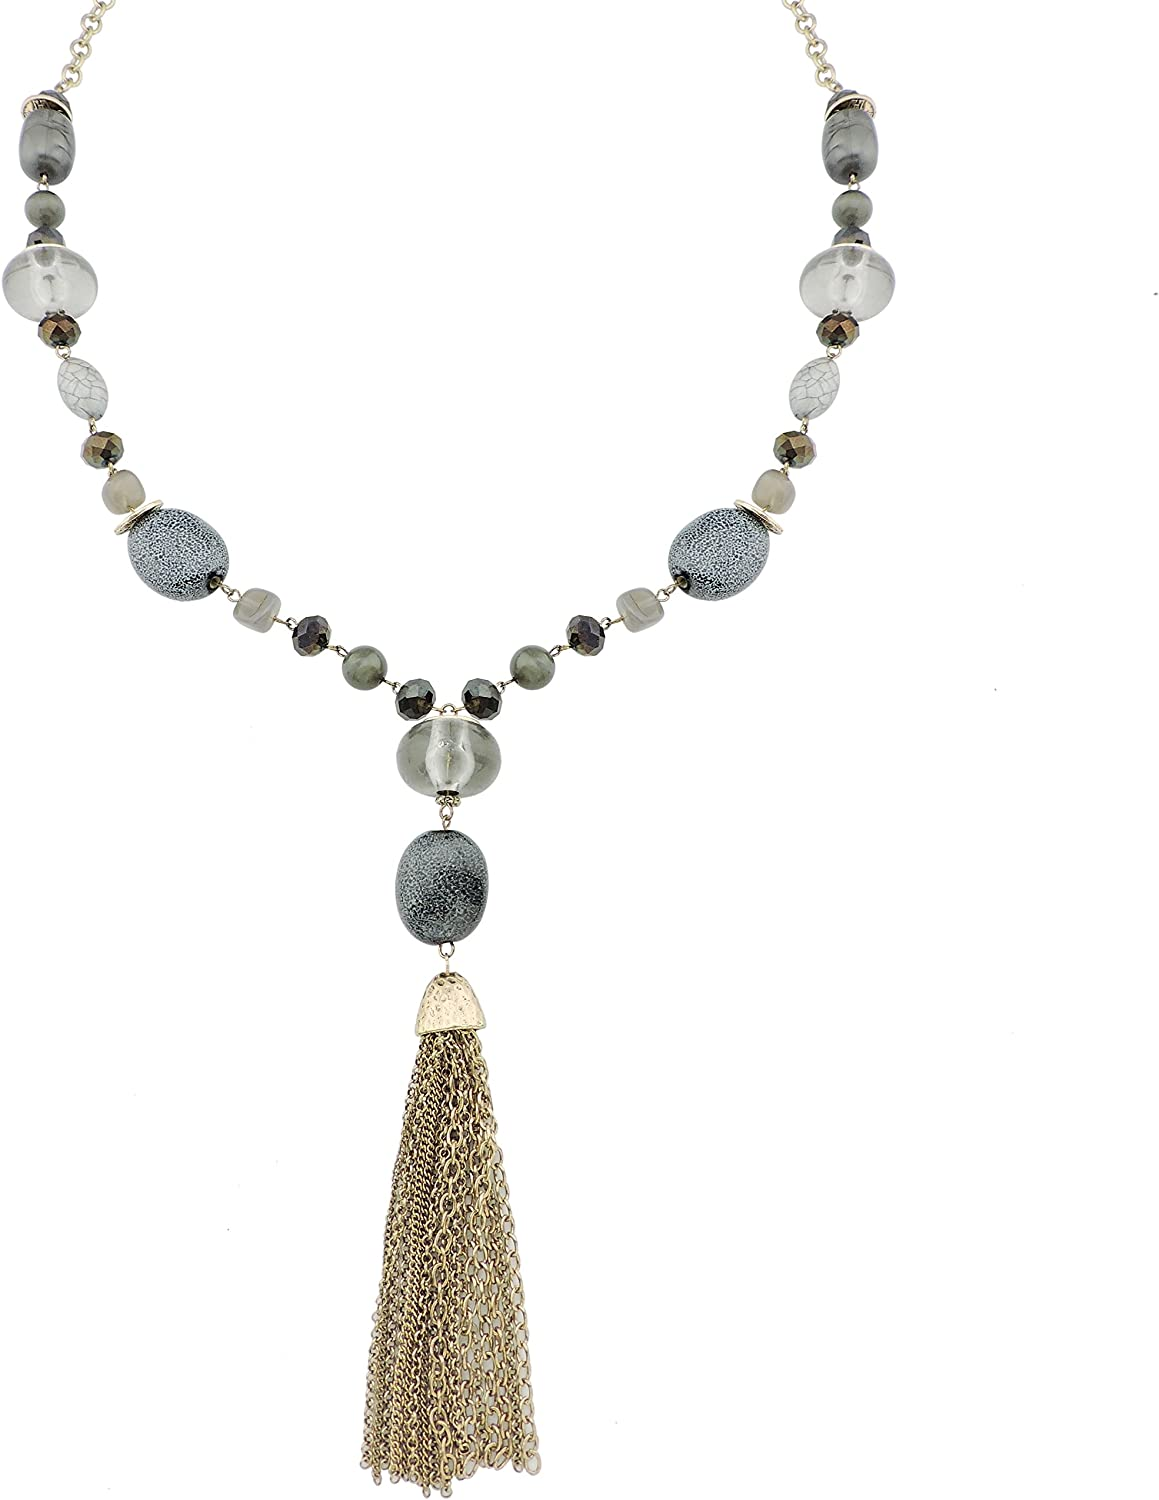 Coiris Long Statement Beaded Antique Gold Chain Sweater Necklace with Tassels Pendant for Women (N0015)